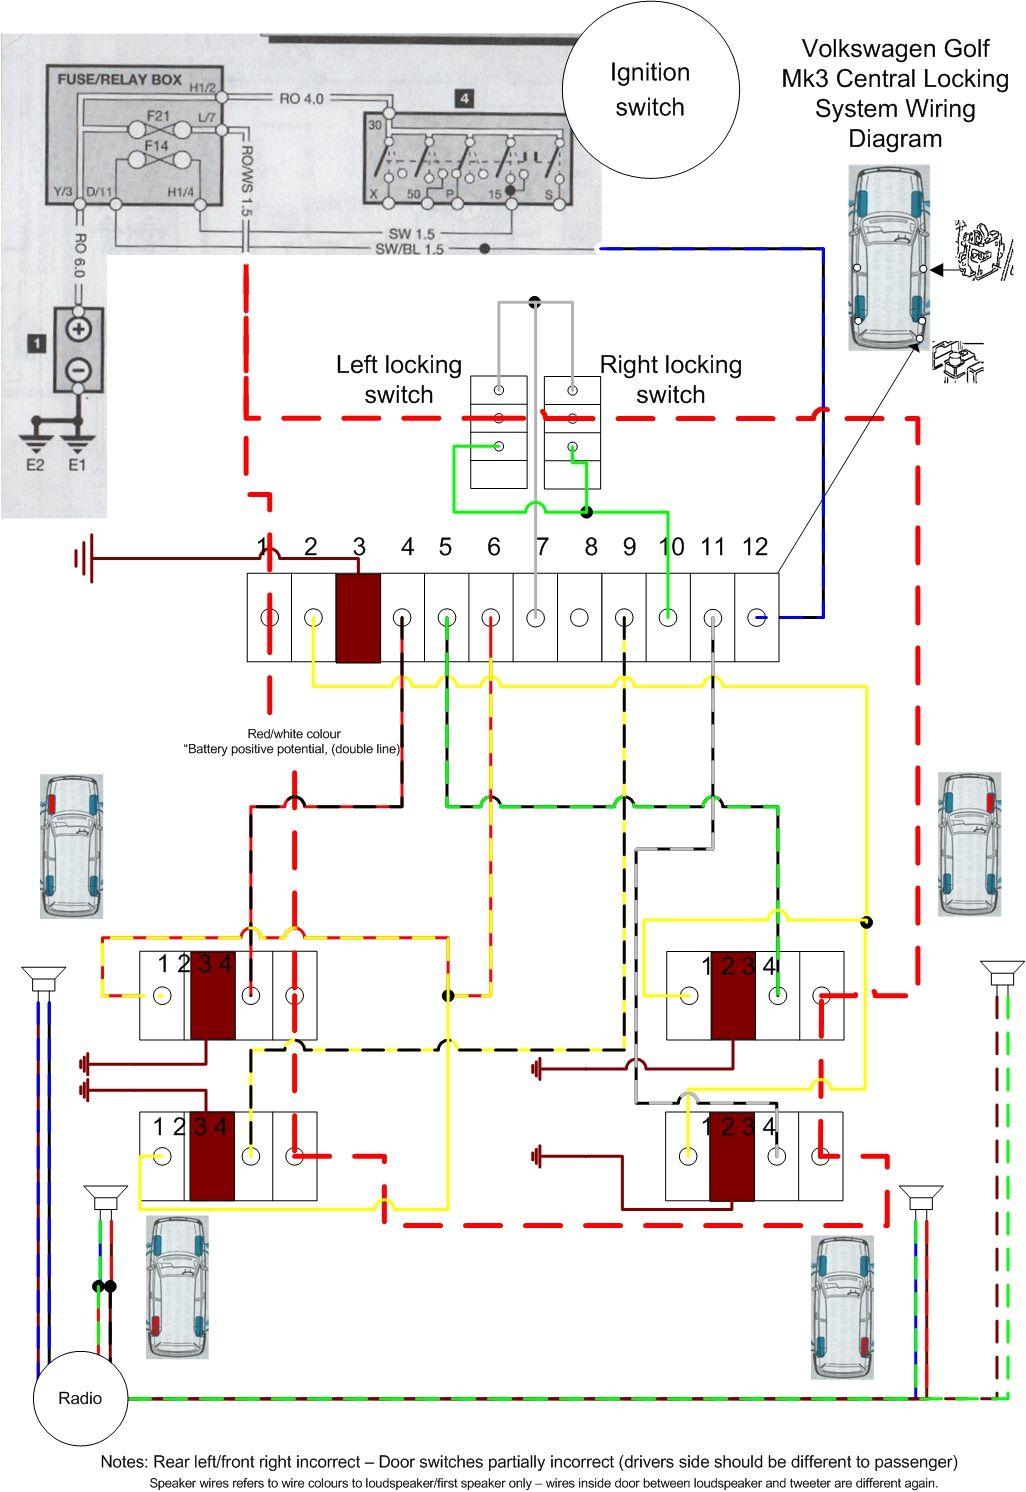 vw ignition switch wiring diagram ... | diagram, vw up, volkswagen up  pinterest